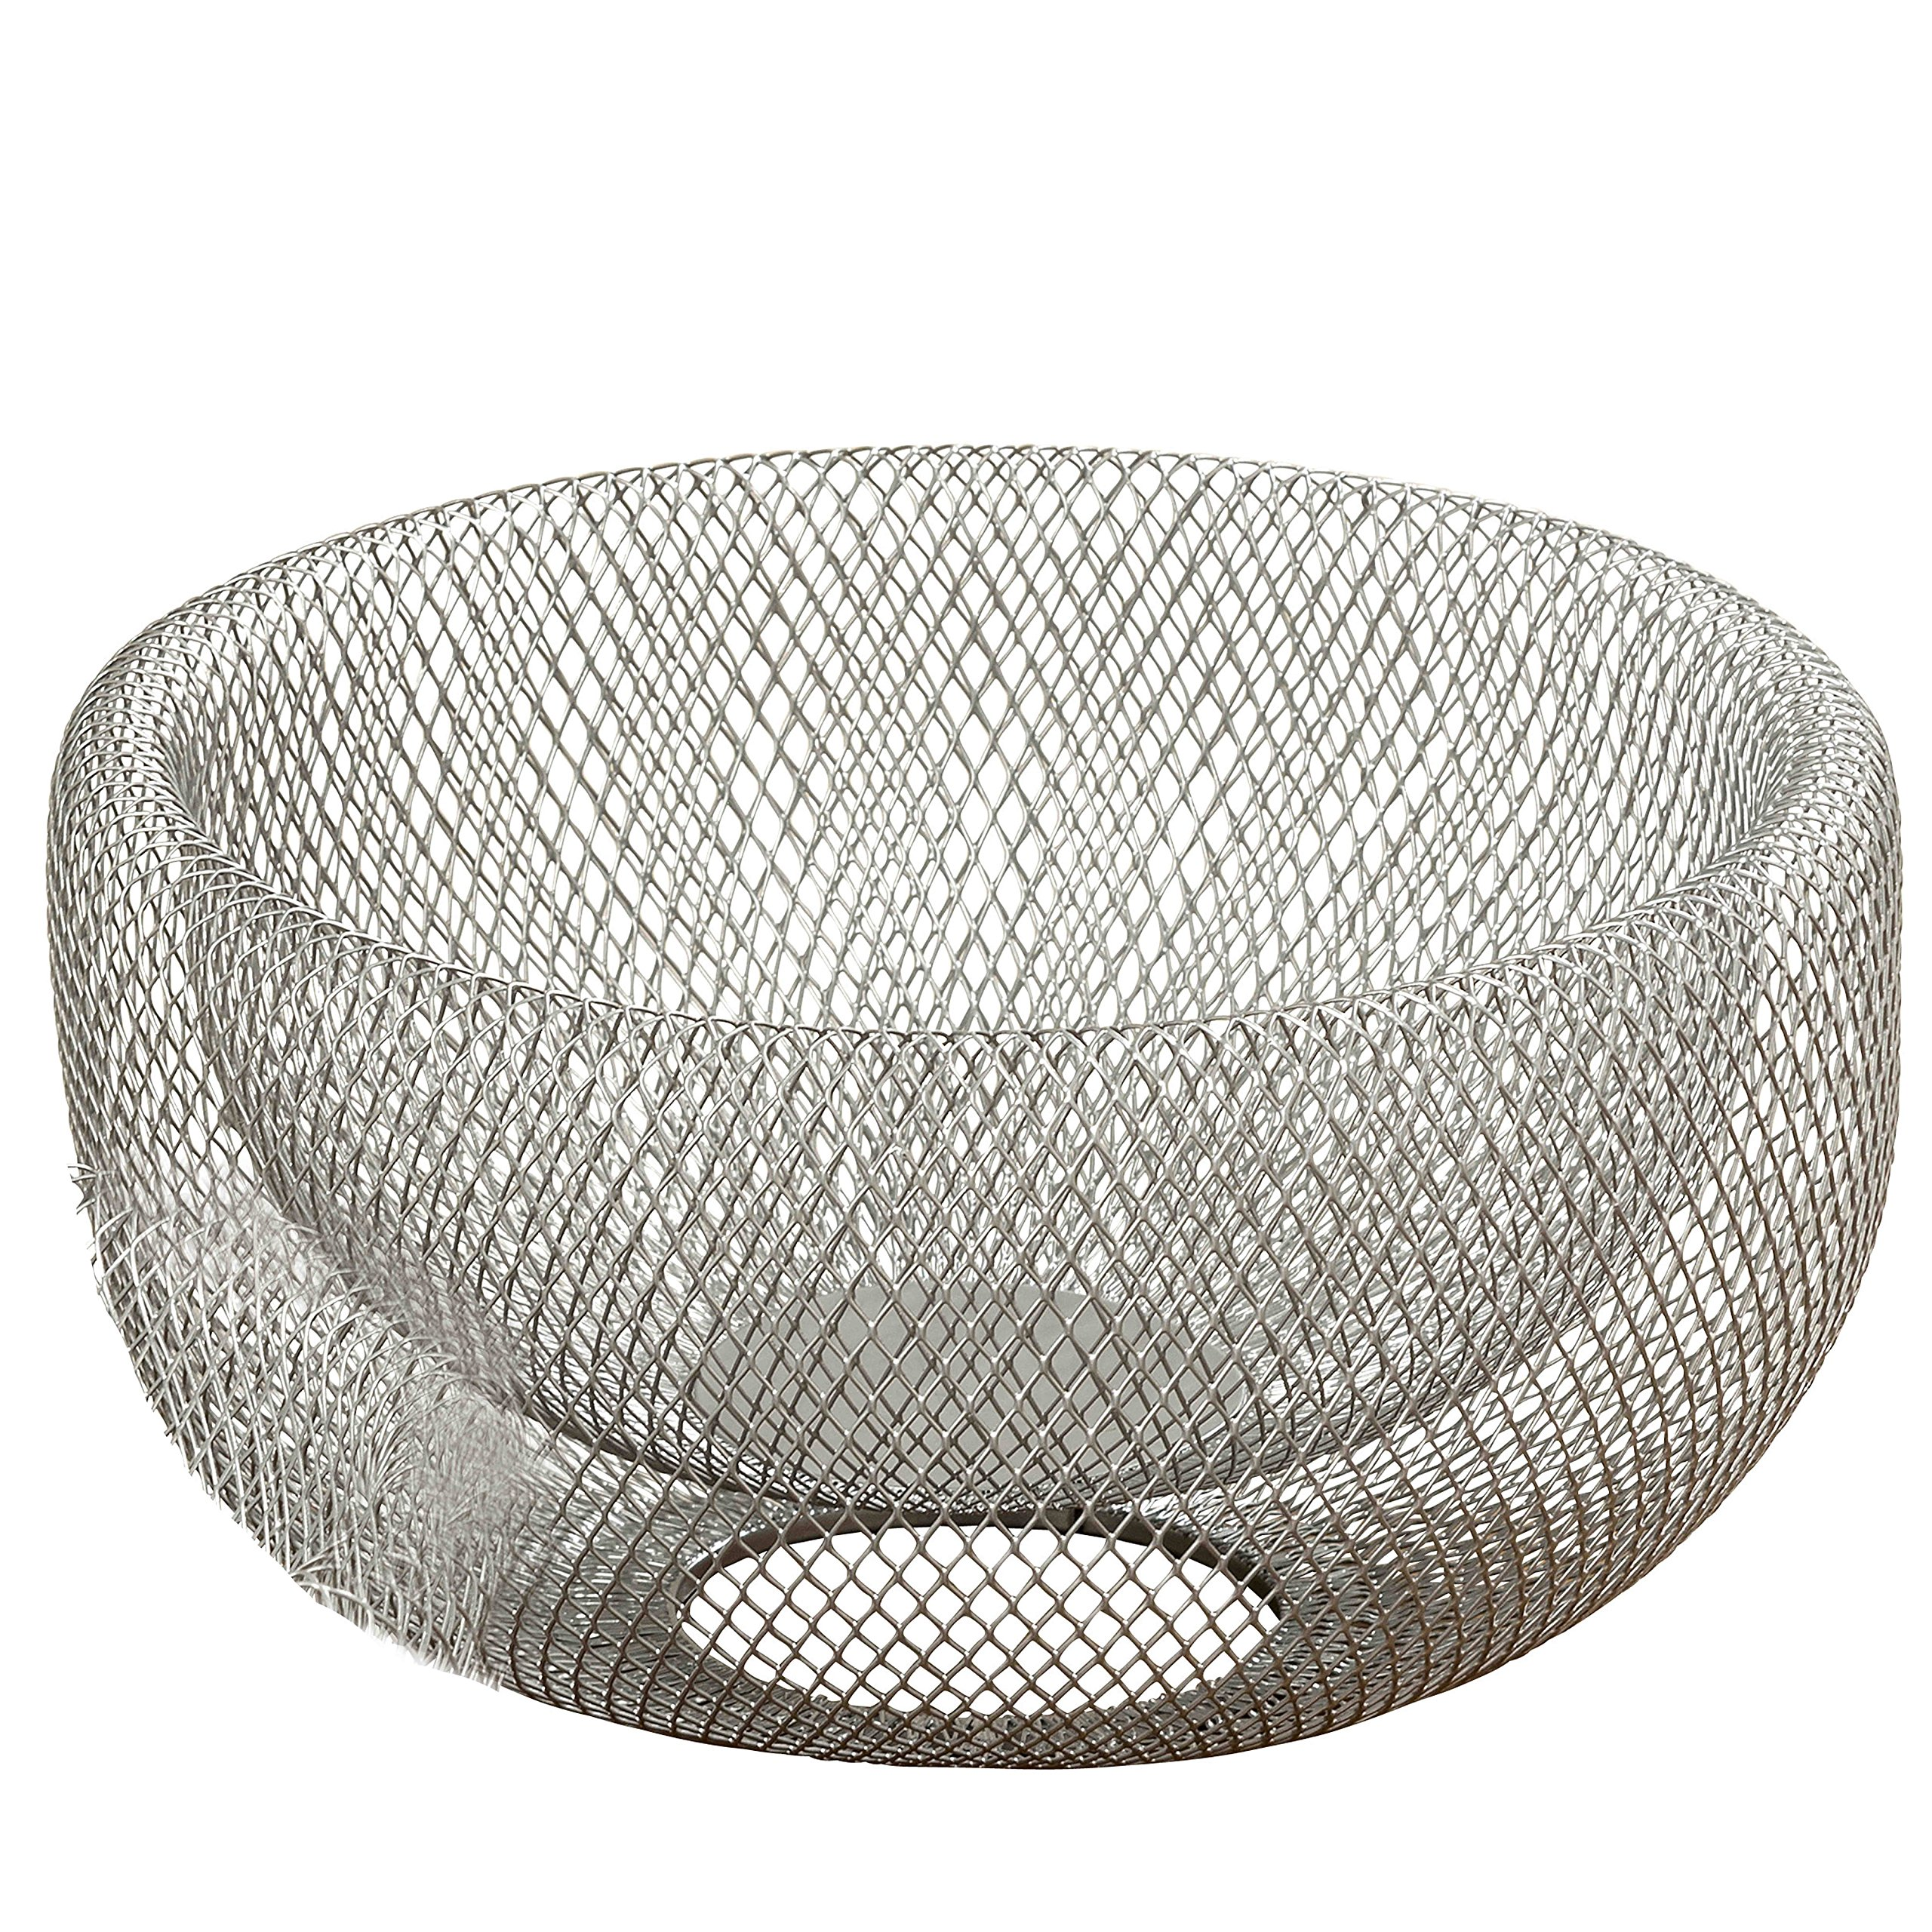 WHW Whole House Worlds Iconic Modern Wire Mesh Fruit Bowl, Art Museum Style, Zinc, Large, 11 Inches Diameter x 6 Inches Tall